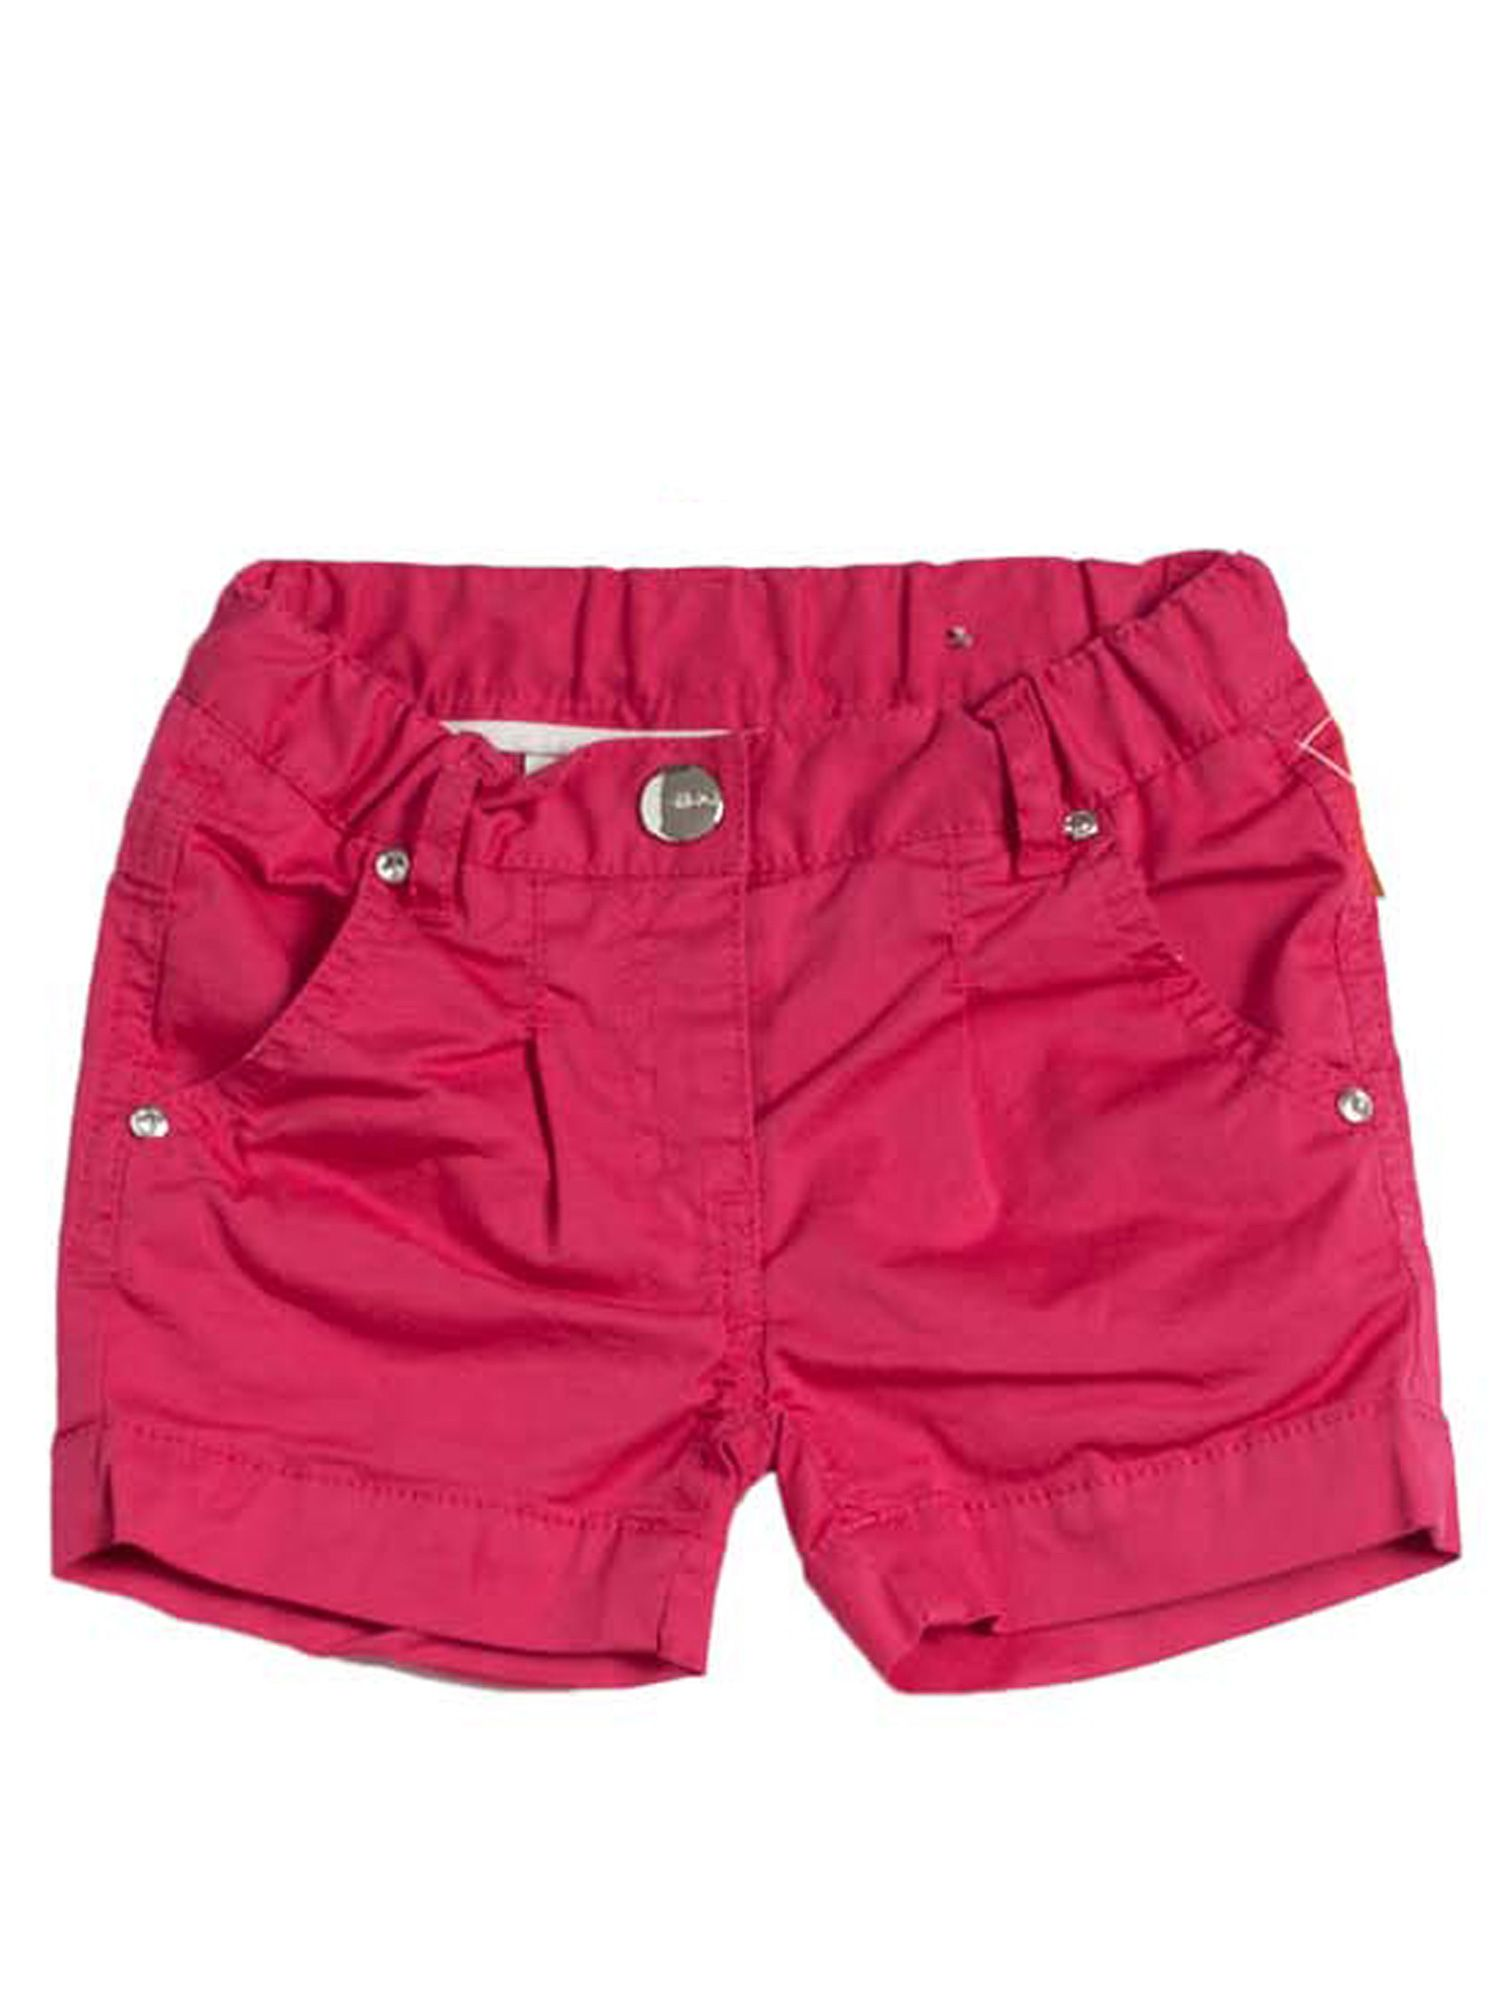 Girls fuxia stretchy shorts